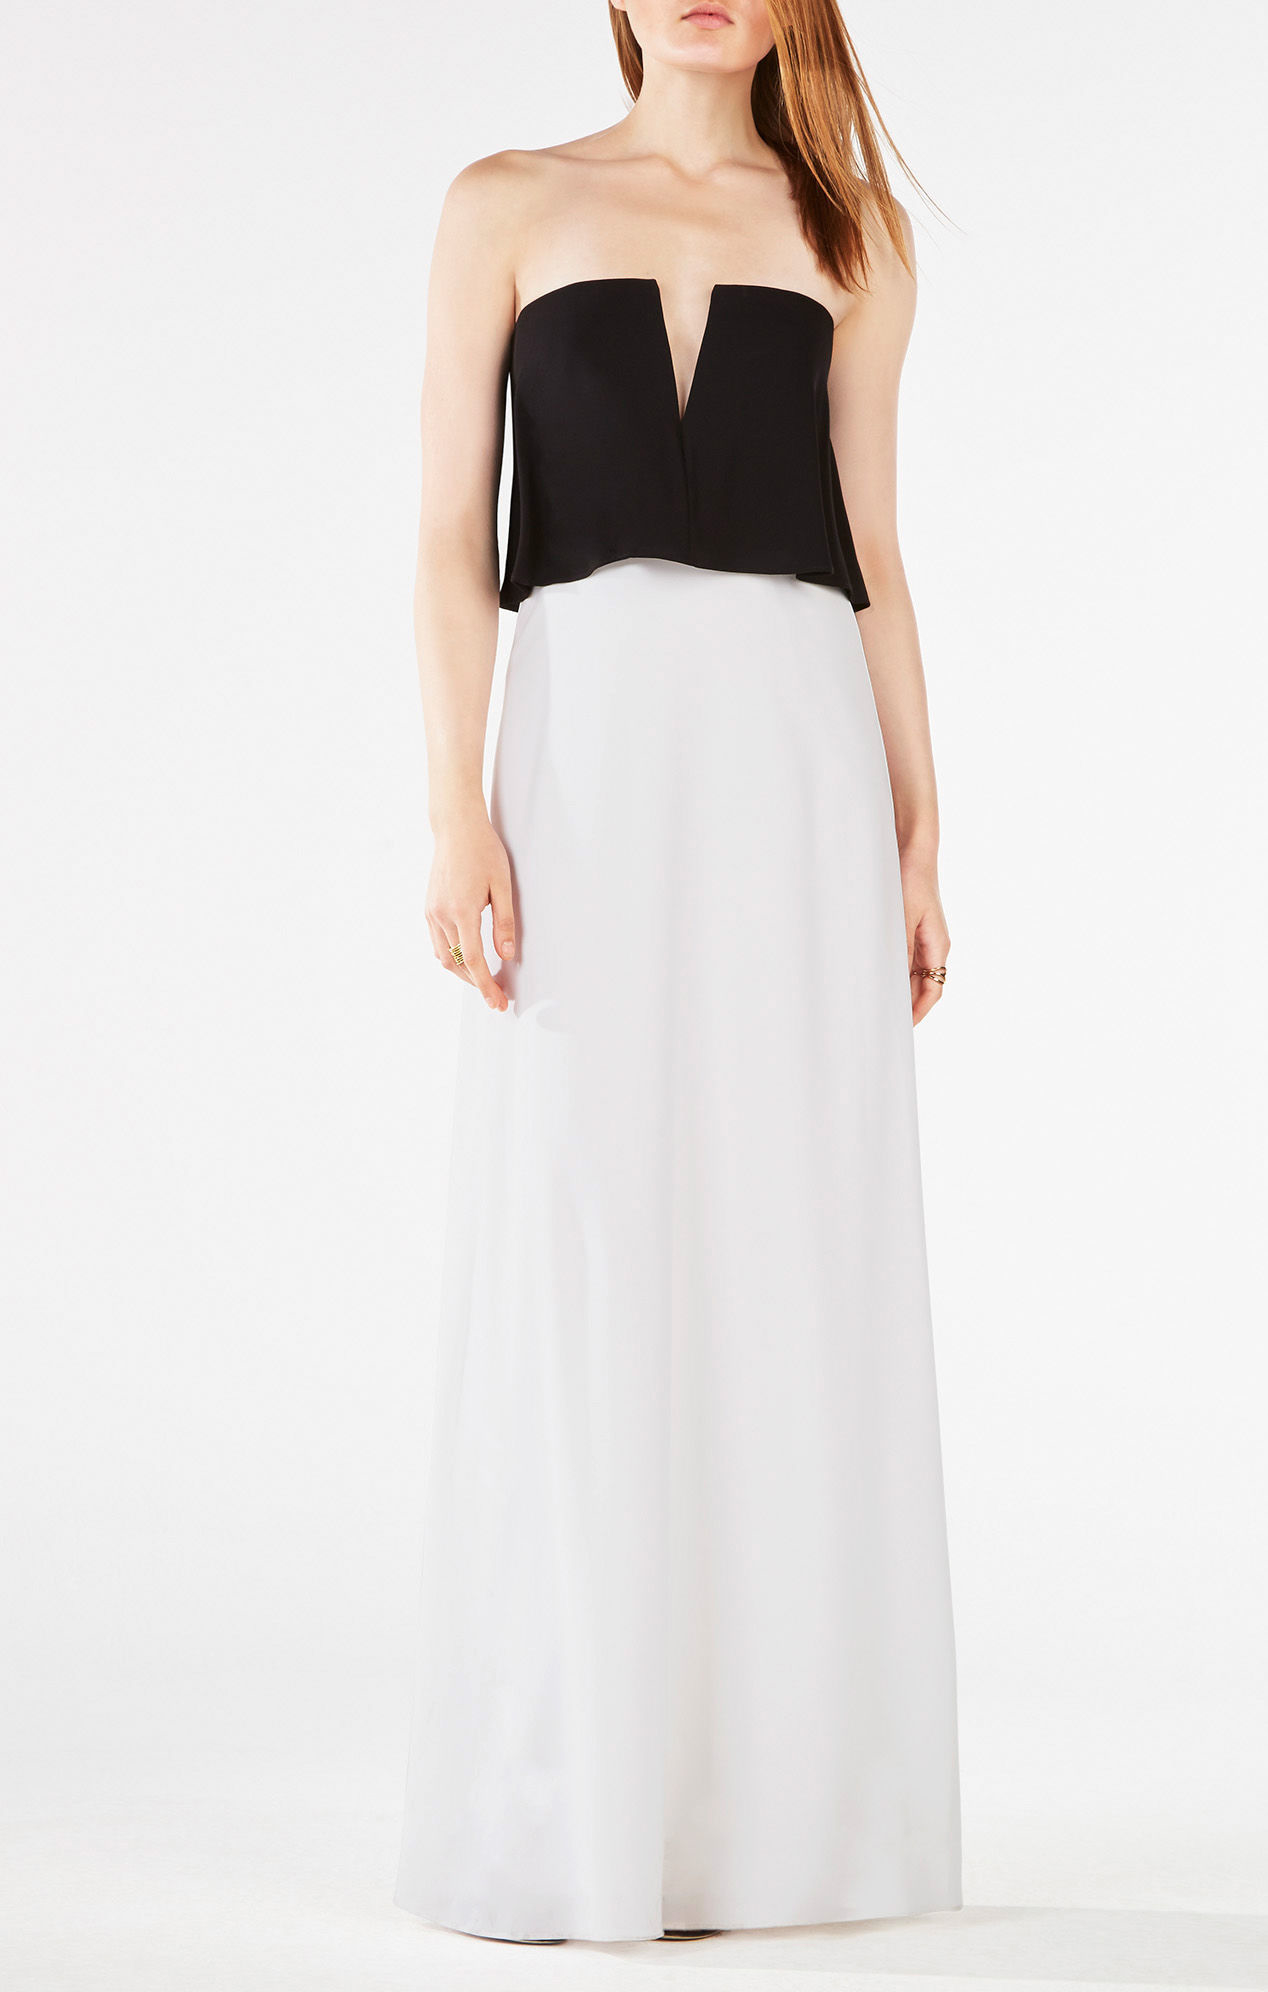 7229df306a7b BCBGMAXAZRIA Alyse Strapless Color-blocked Gown in Black - Lyst